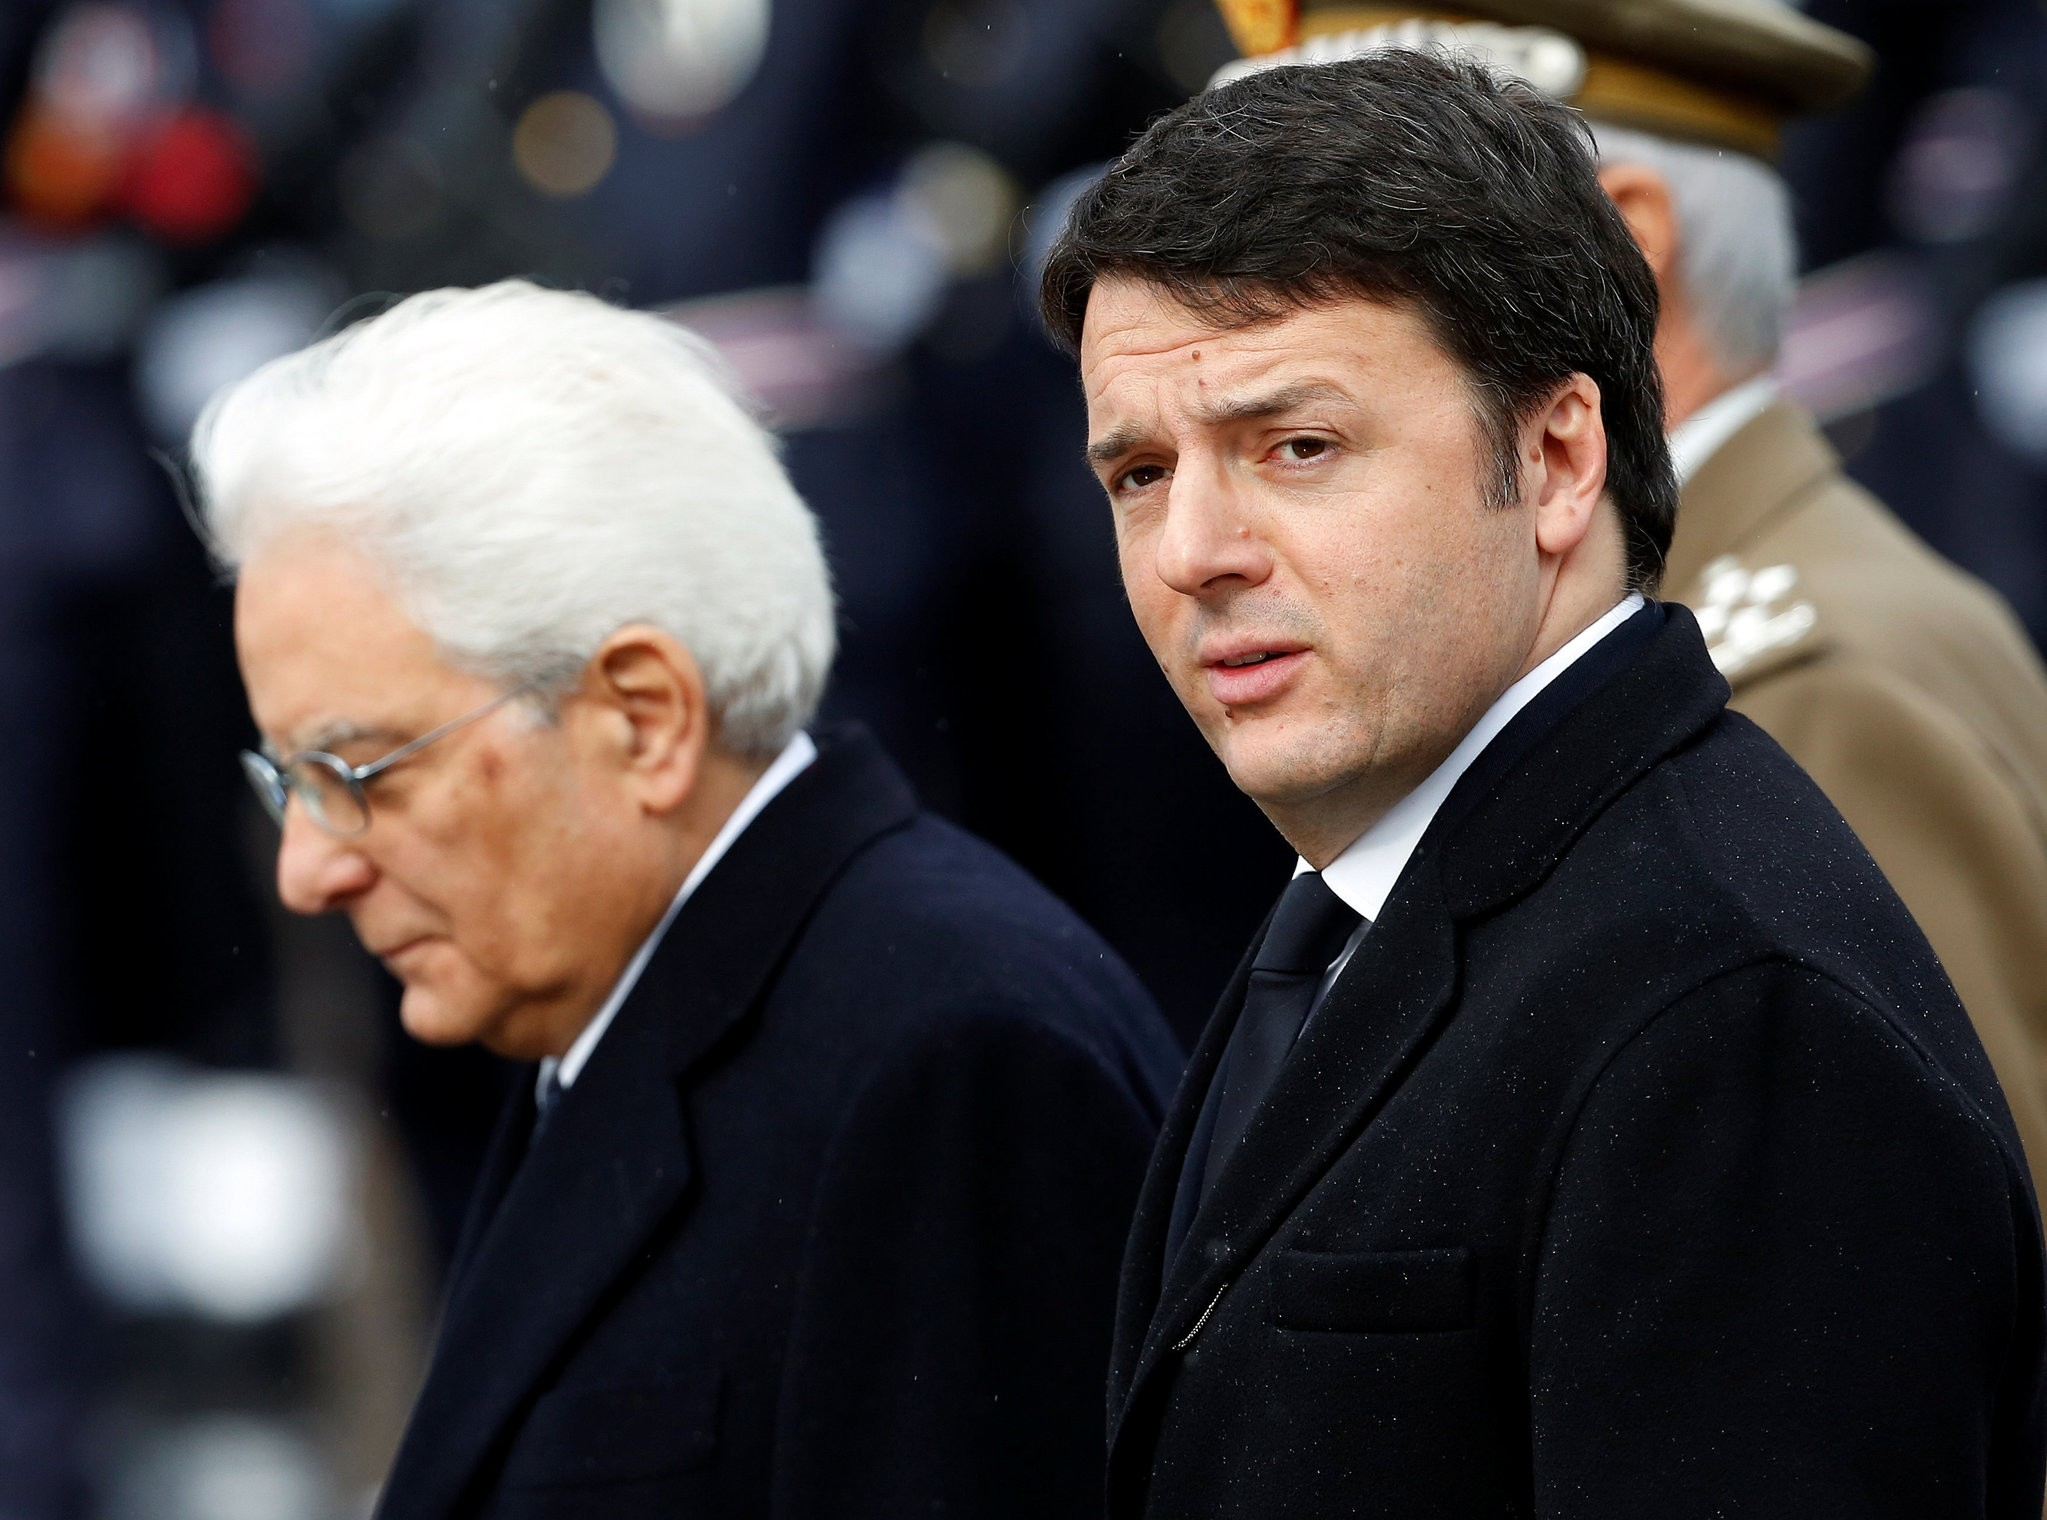 Italian Prime Minister Matteo Renzi (R) and Italy's newly elected president Sergio Mattarella as they arrive at the Unknown Soldier's monument in central Rome, February 3, 2015. (Reuters Photo)